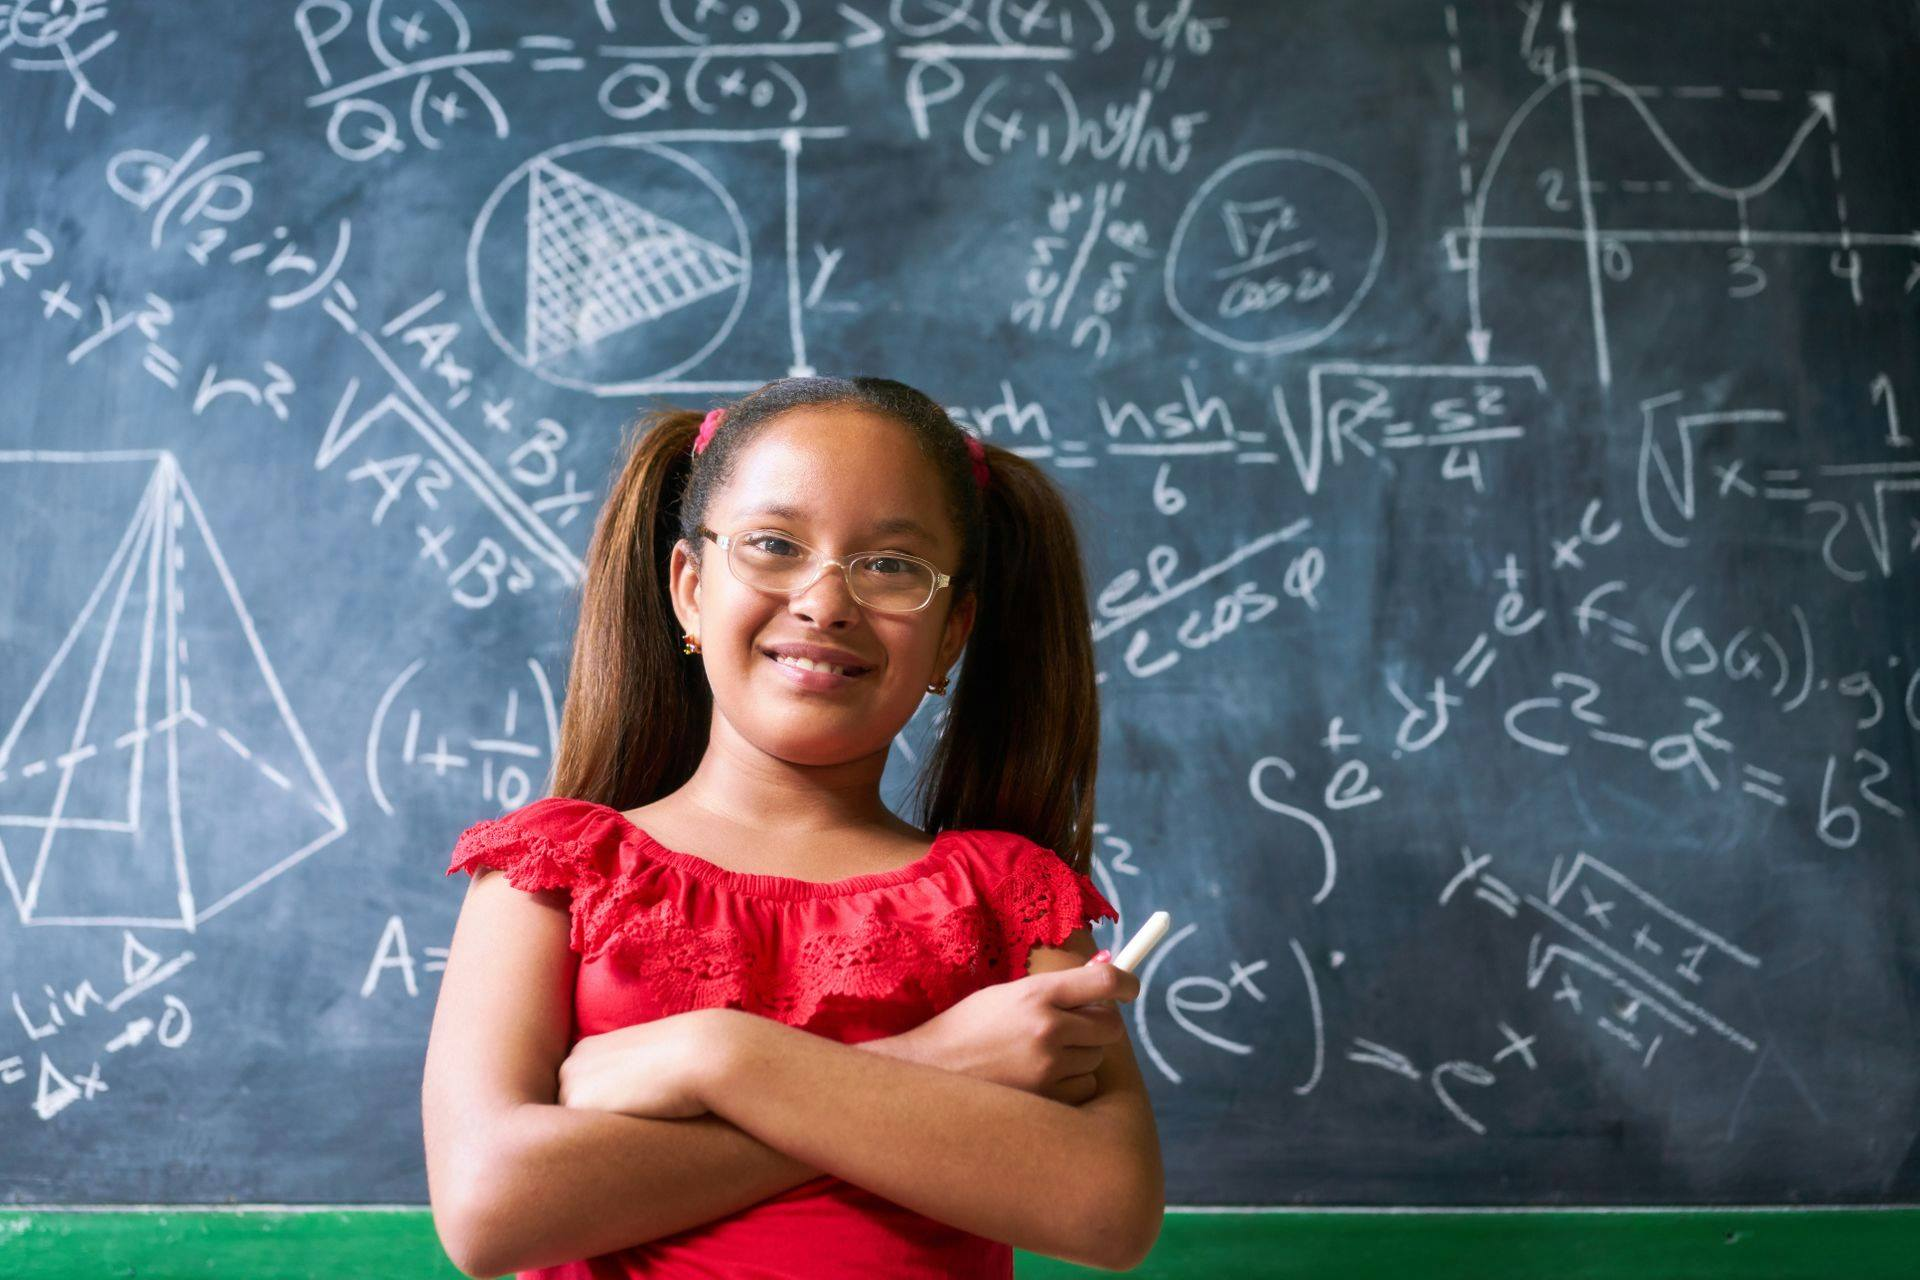 a girl with a red shirt and pigtails in front of a chalkboard